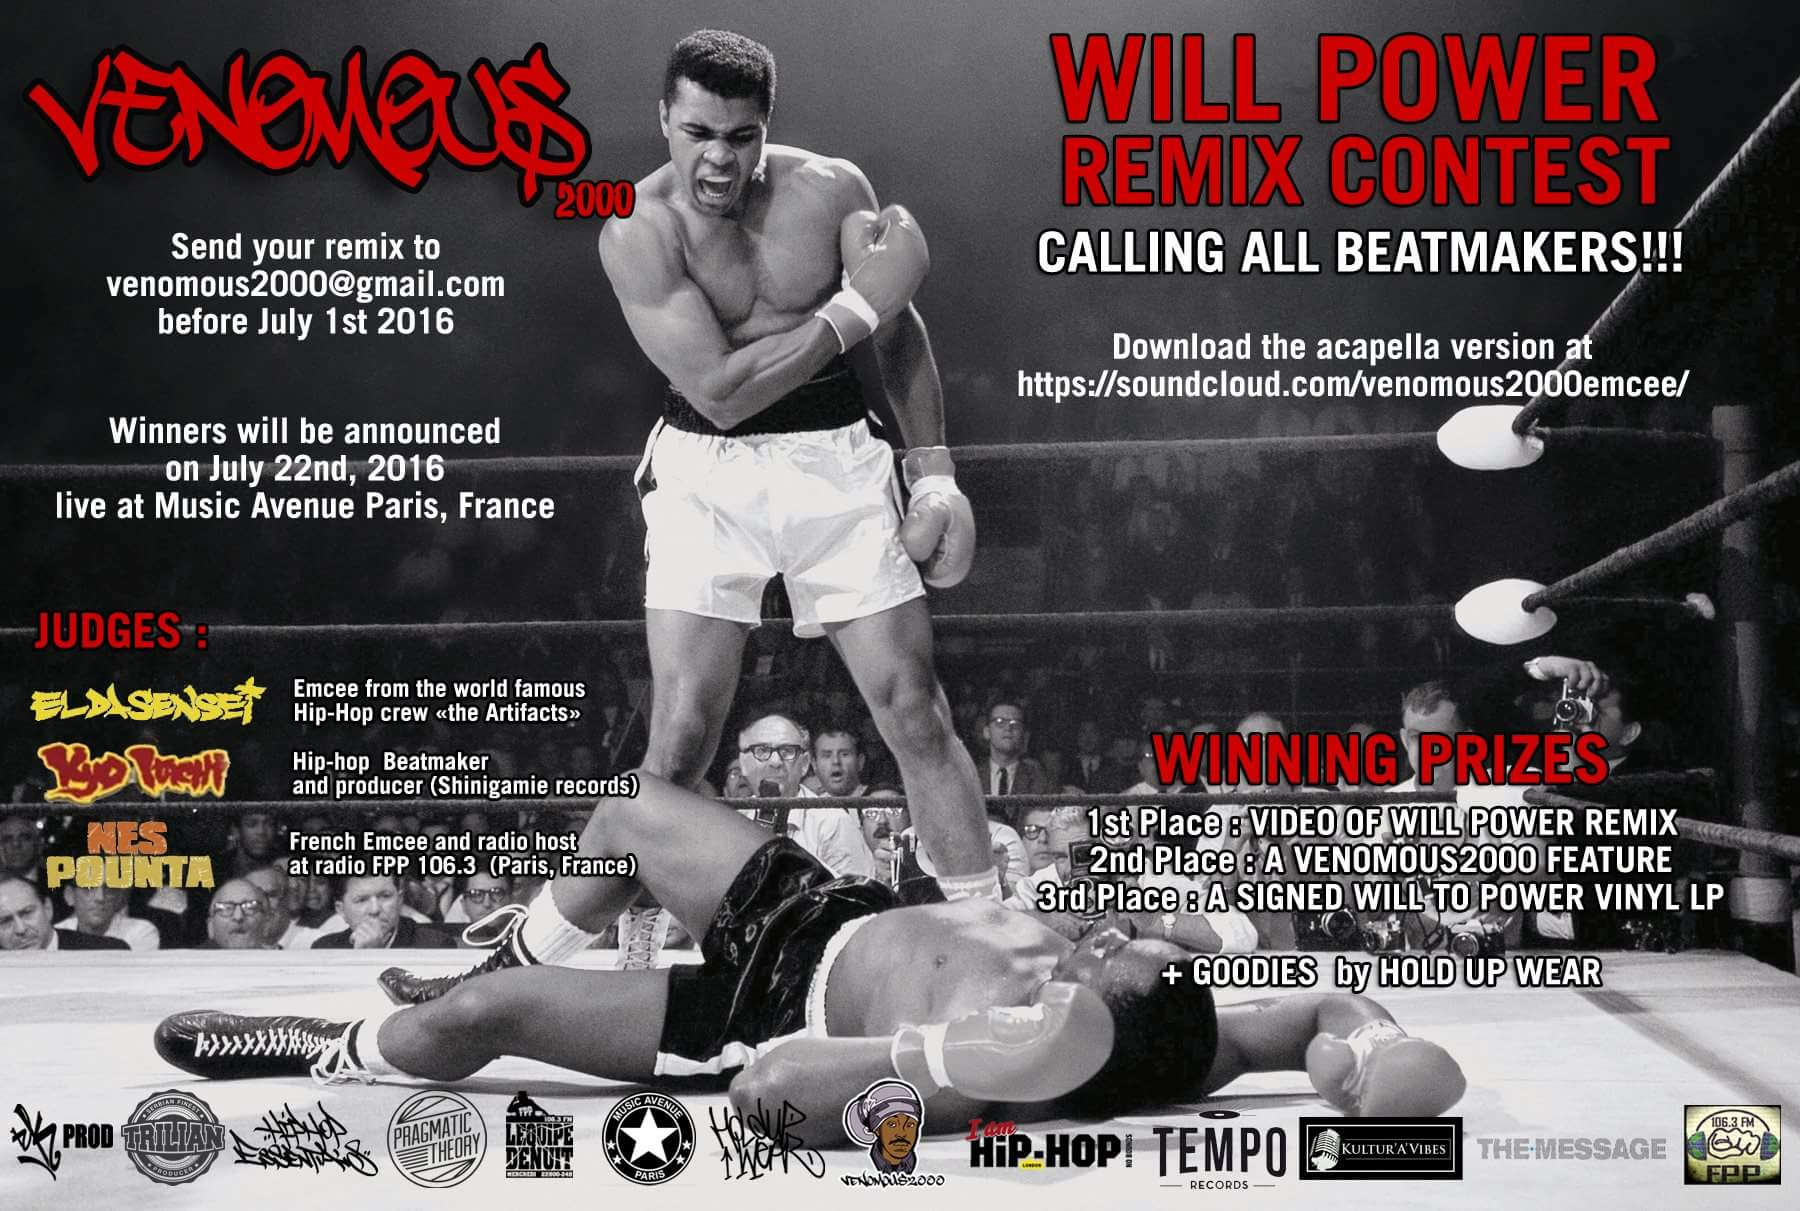 Remix Contest for WILL POWER